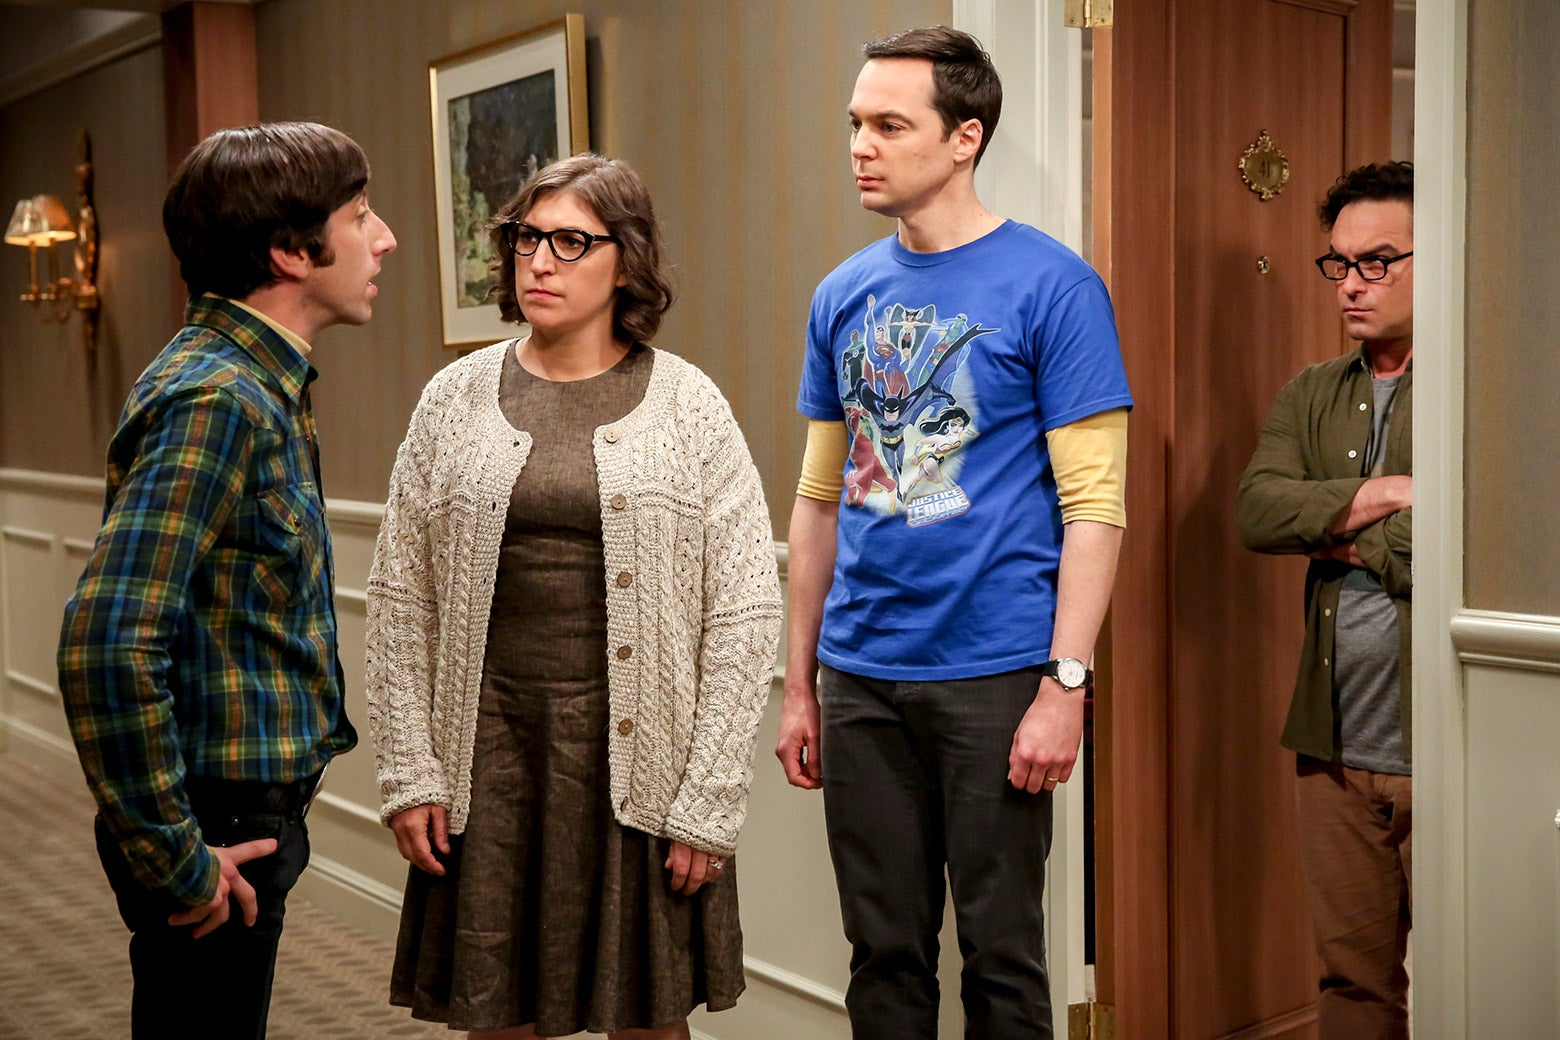 Simon Helberg, Mayim Bialik, Jim Parsons, and Johnny Galecki stand in a hallway in a still photo from the show.